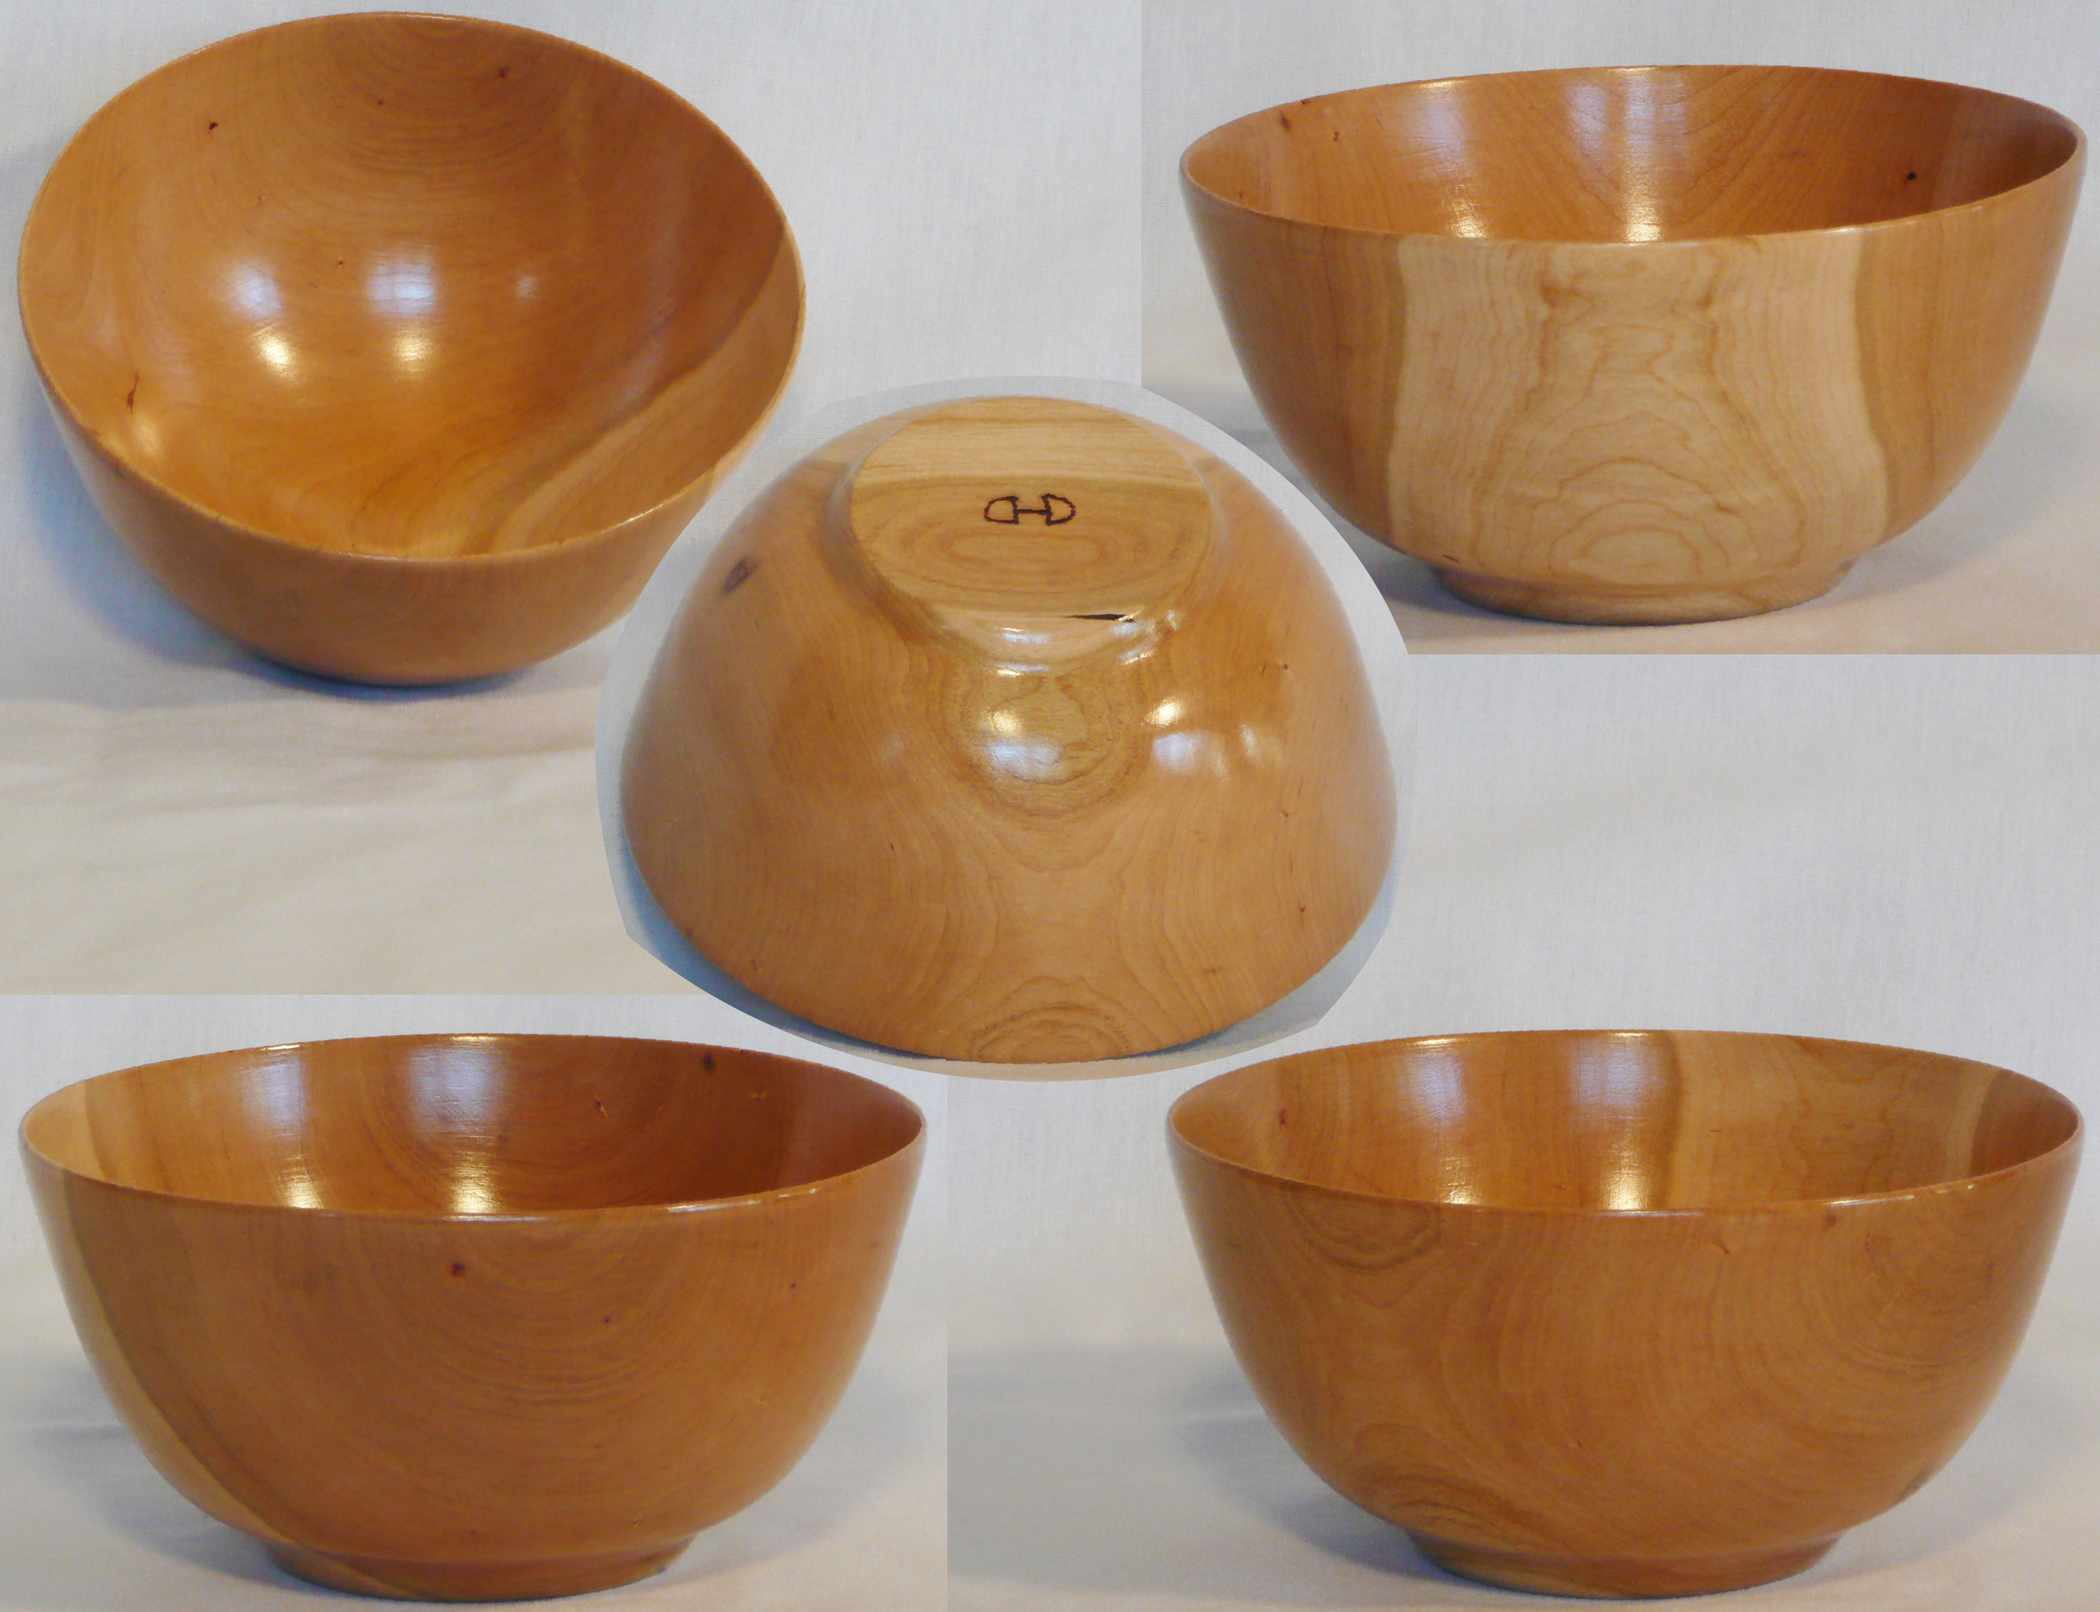 Hand turned cherry bowl with sapwood accent on one side by Cynthia D. Haney.